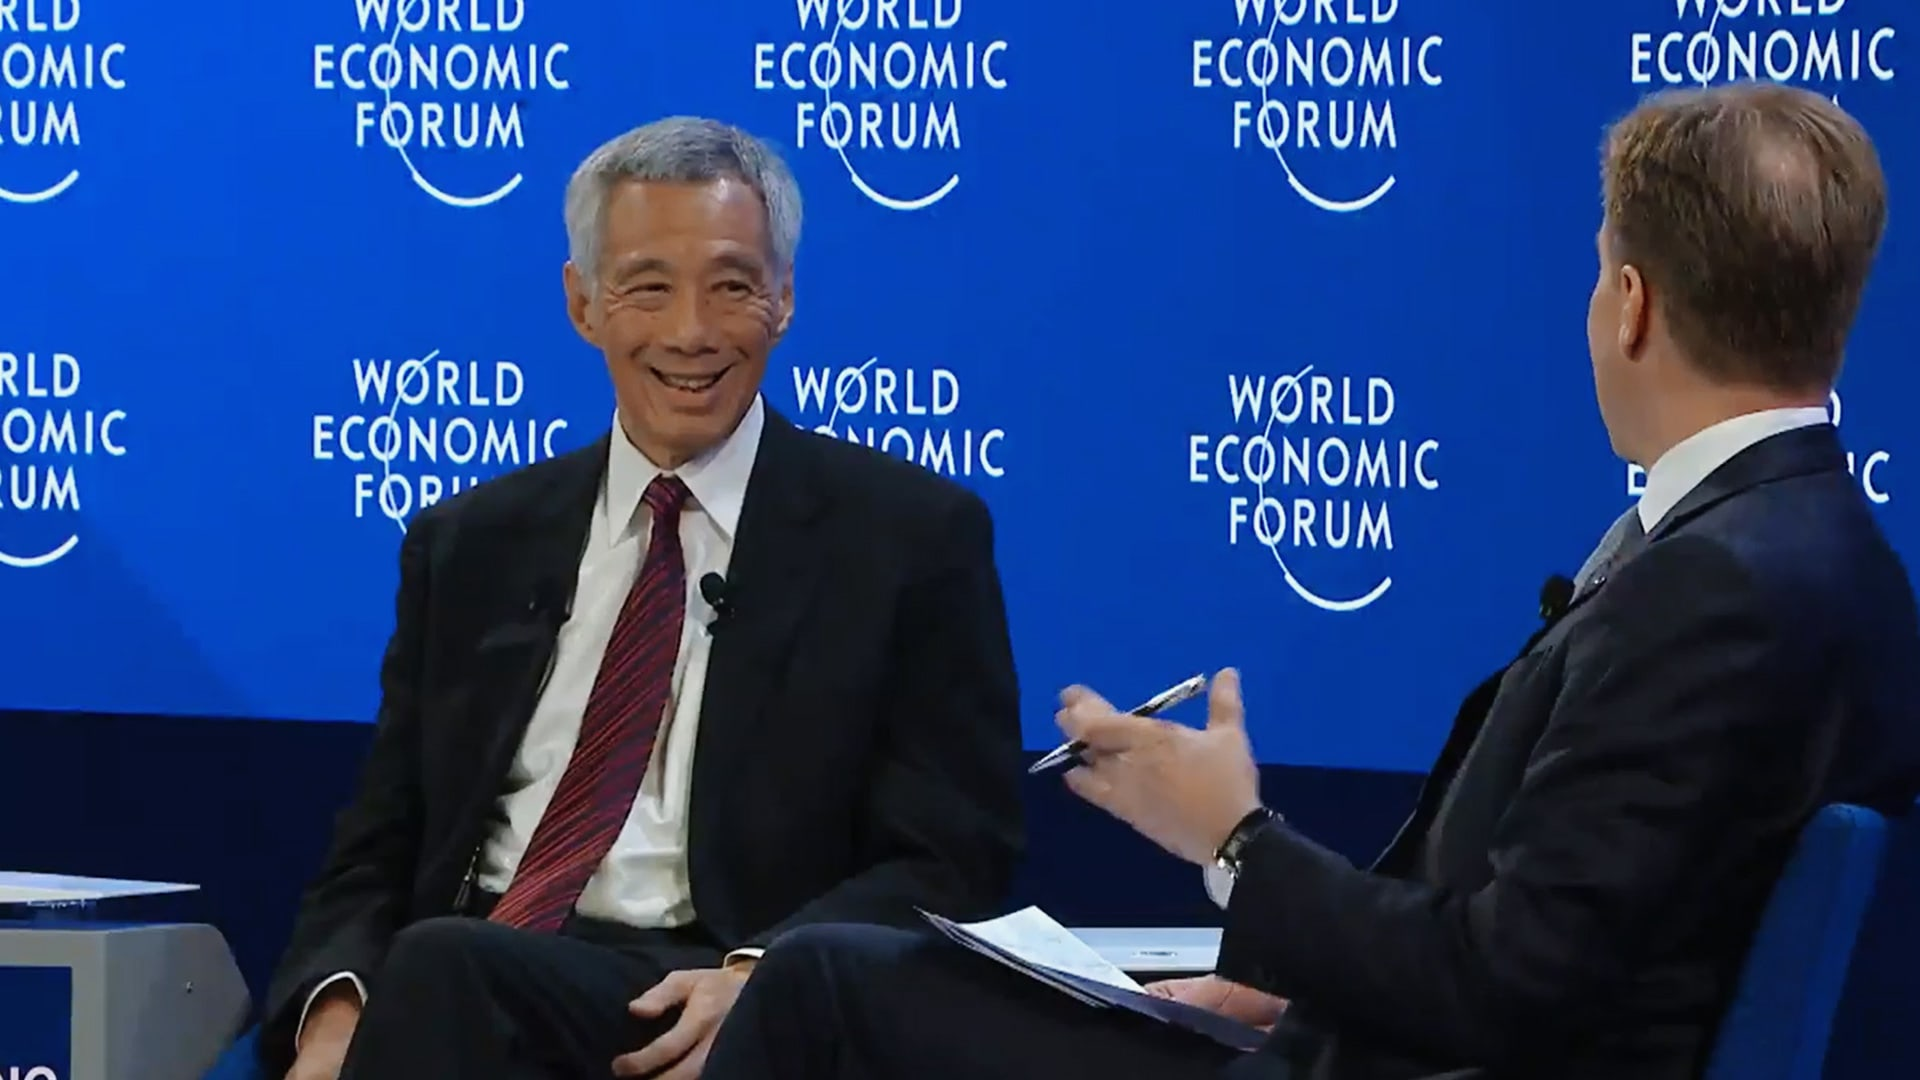 A Conversation with Lee Hsien Loong, Prime Minister of Singapore | Davos 2020